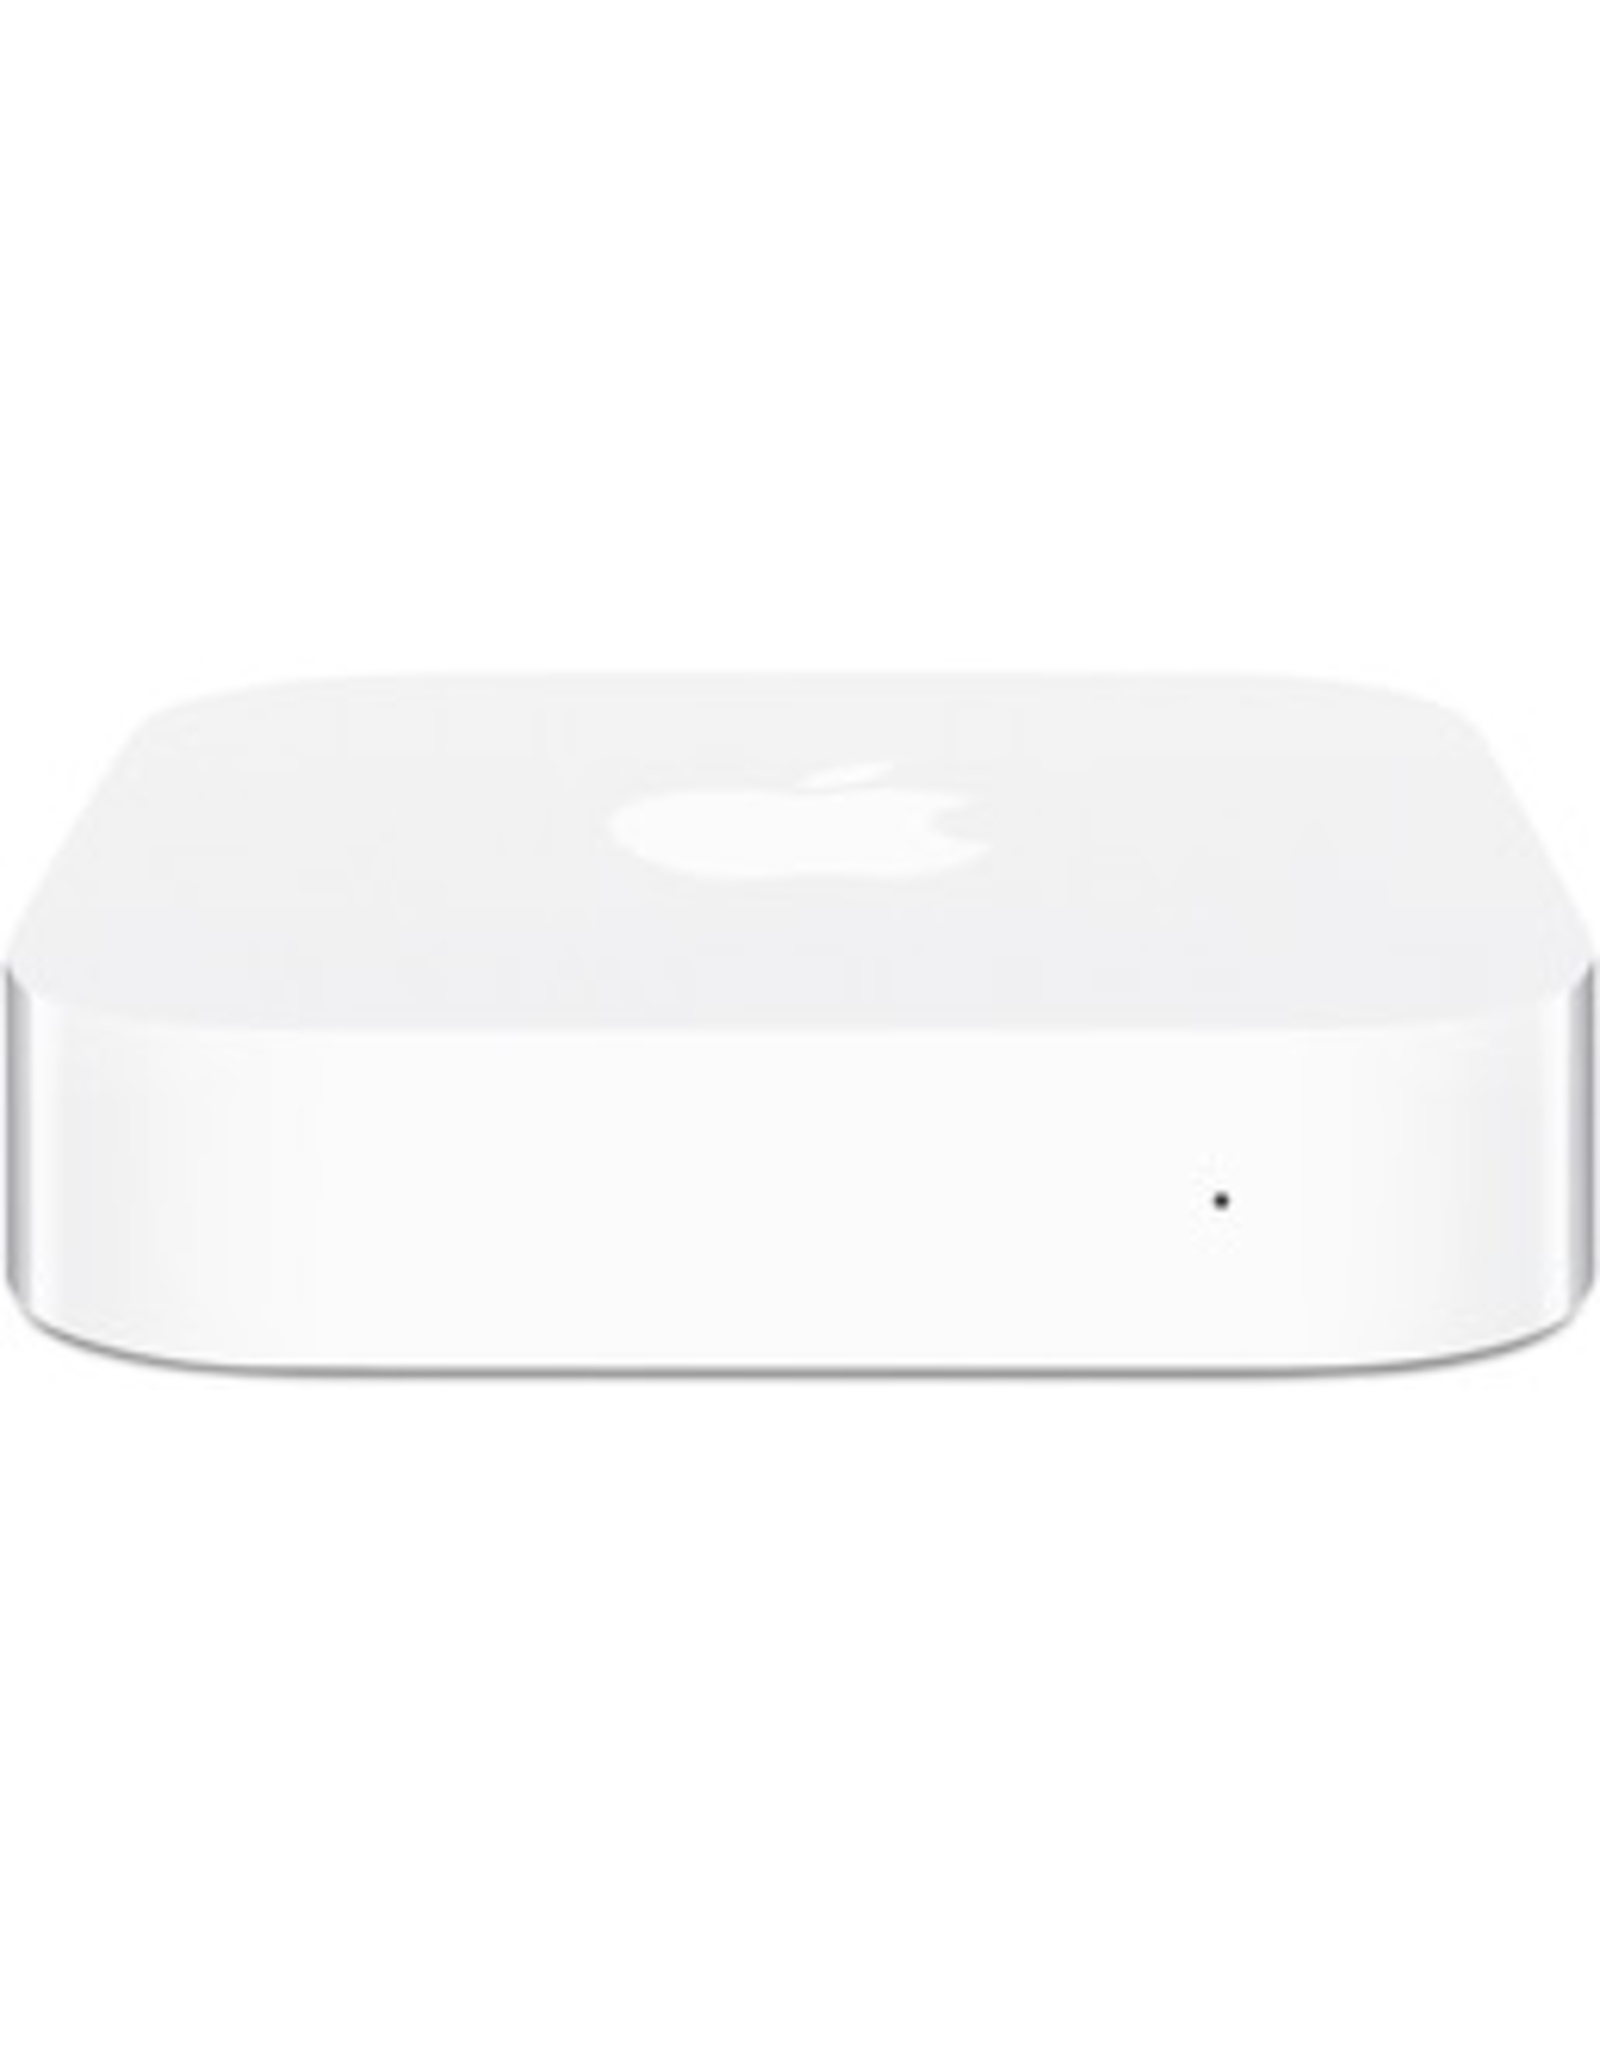 Apple Apple Airport Express Base Station - PreOwned